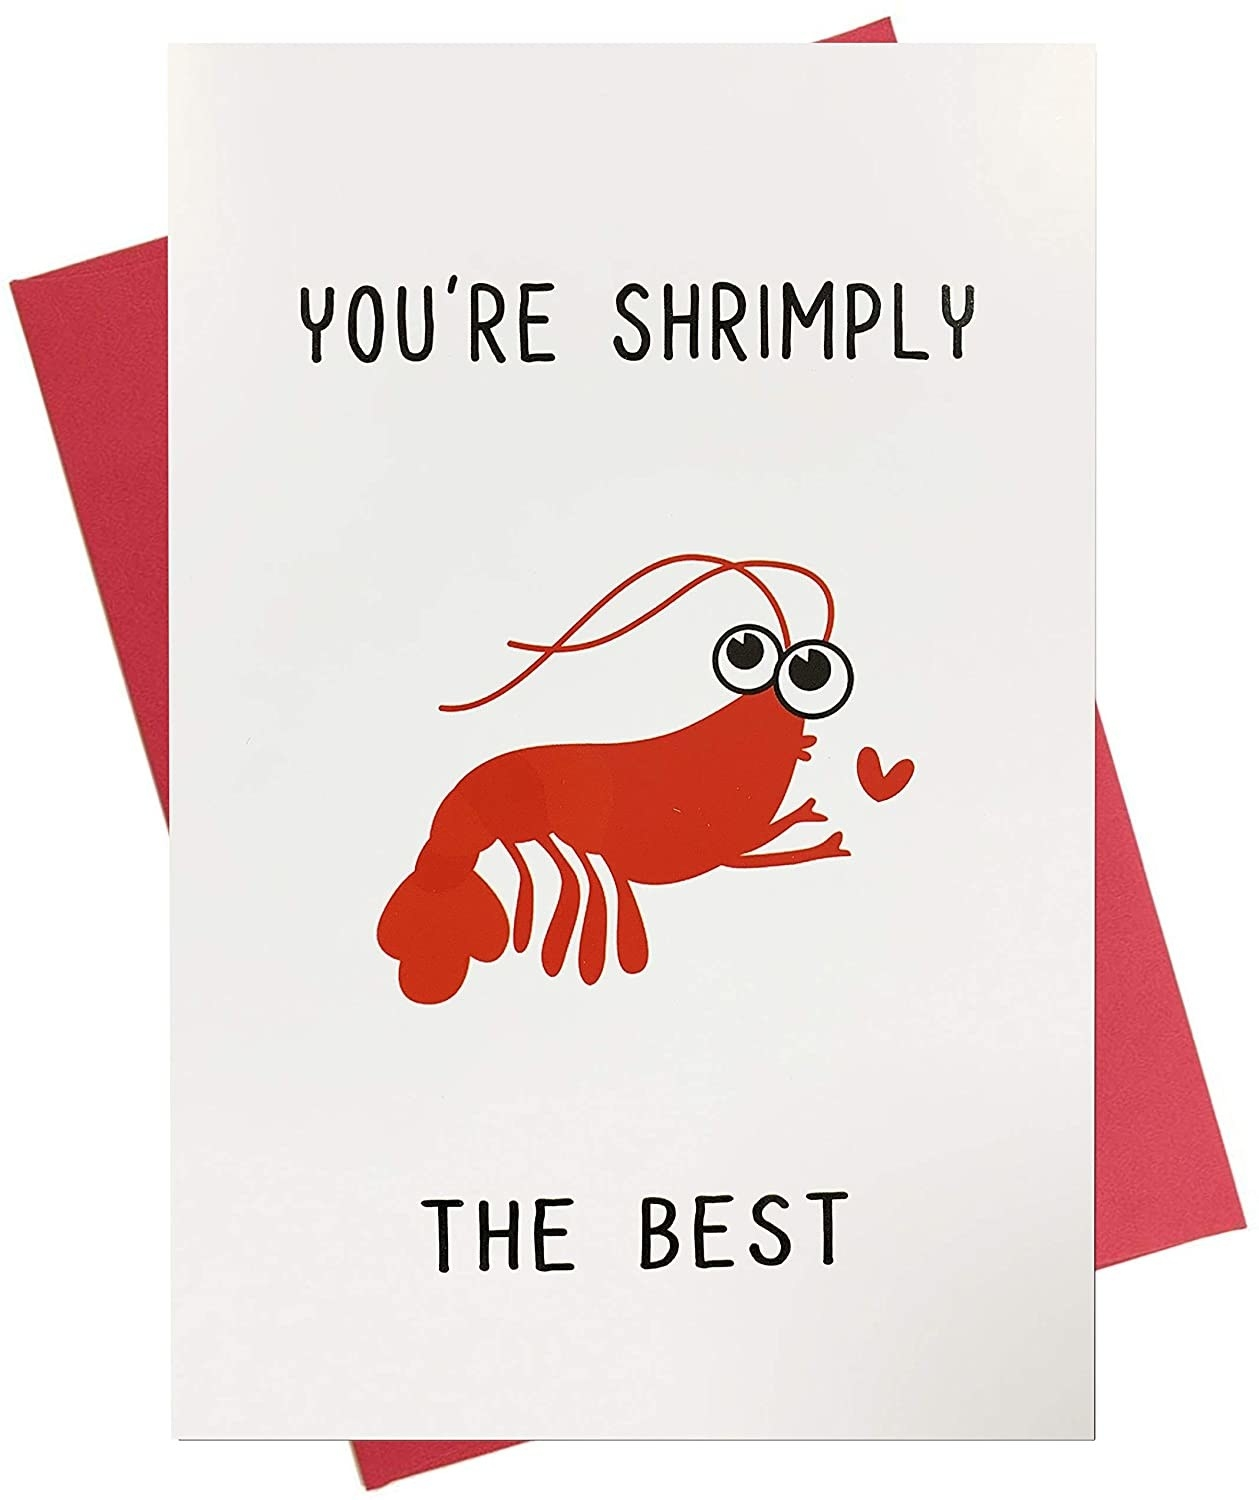 """A white card with a red drawing of a shrimp, and the words """"You're shrimply the best"""" in black"""